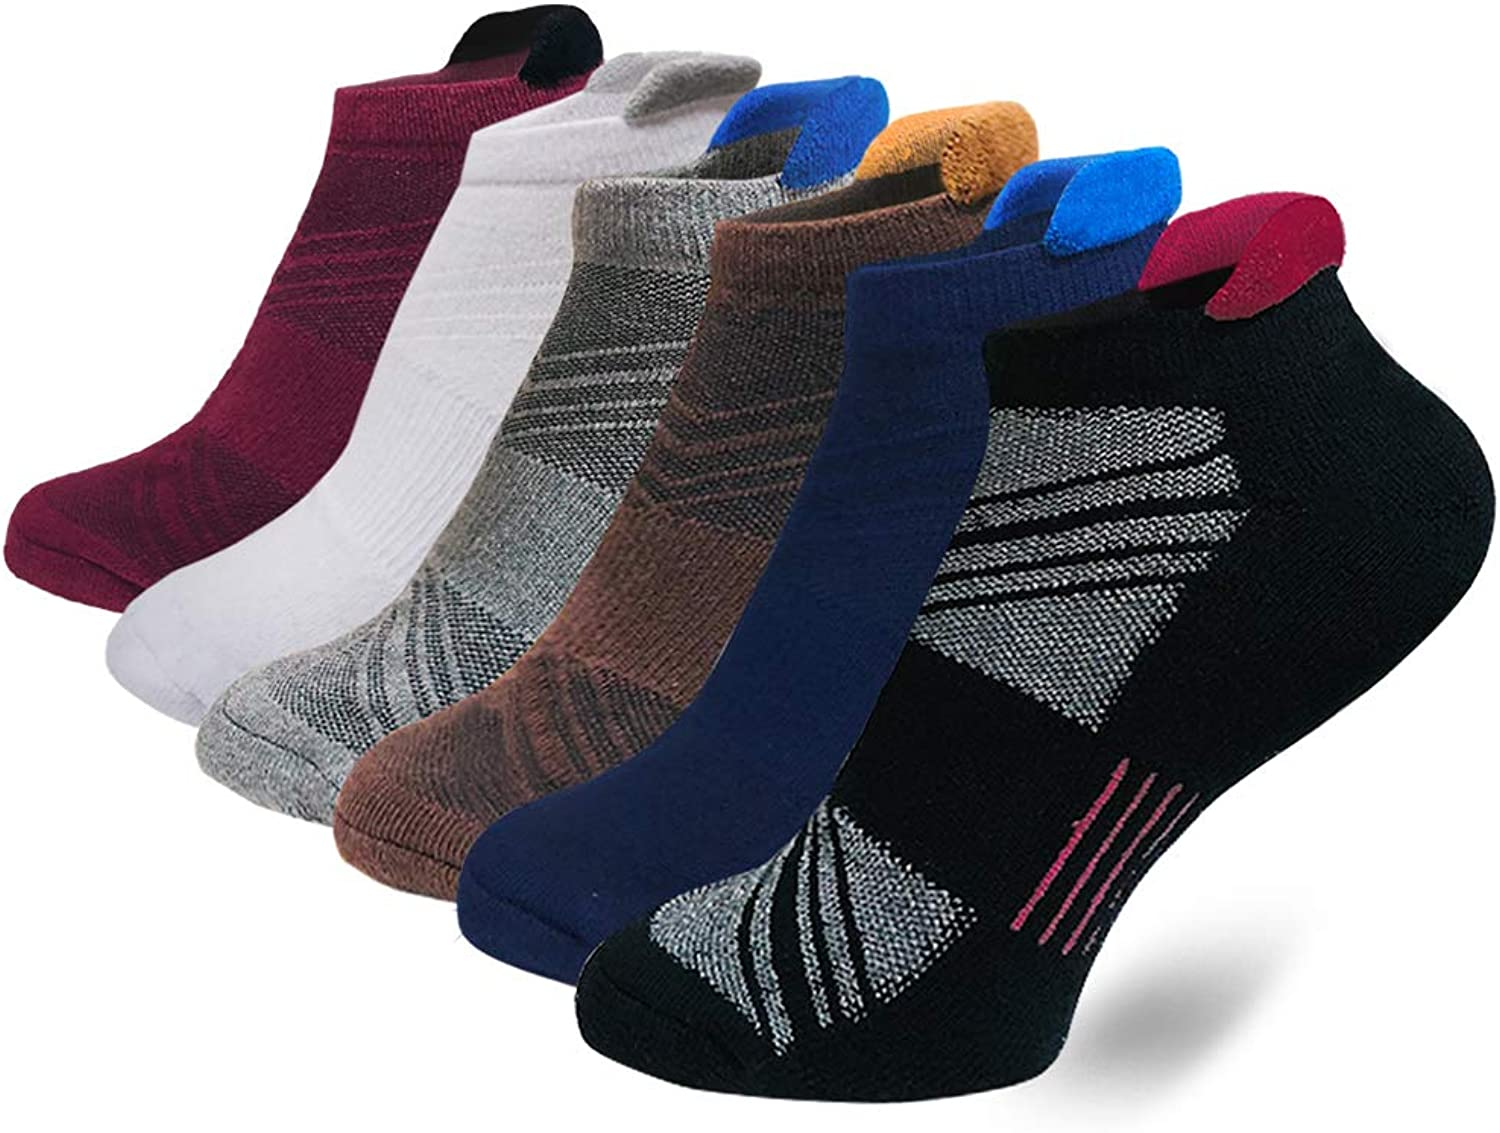 Men's Performance No Show Athletic Socks Running Sports Comfort Cushioned Tab Socks(6 Pairs)